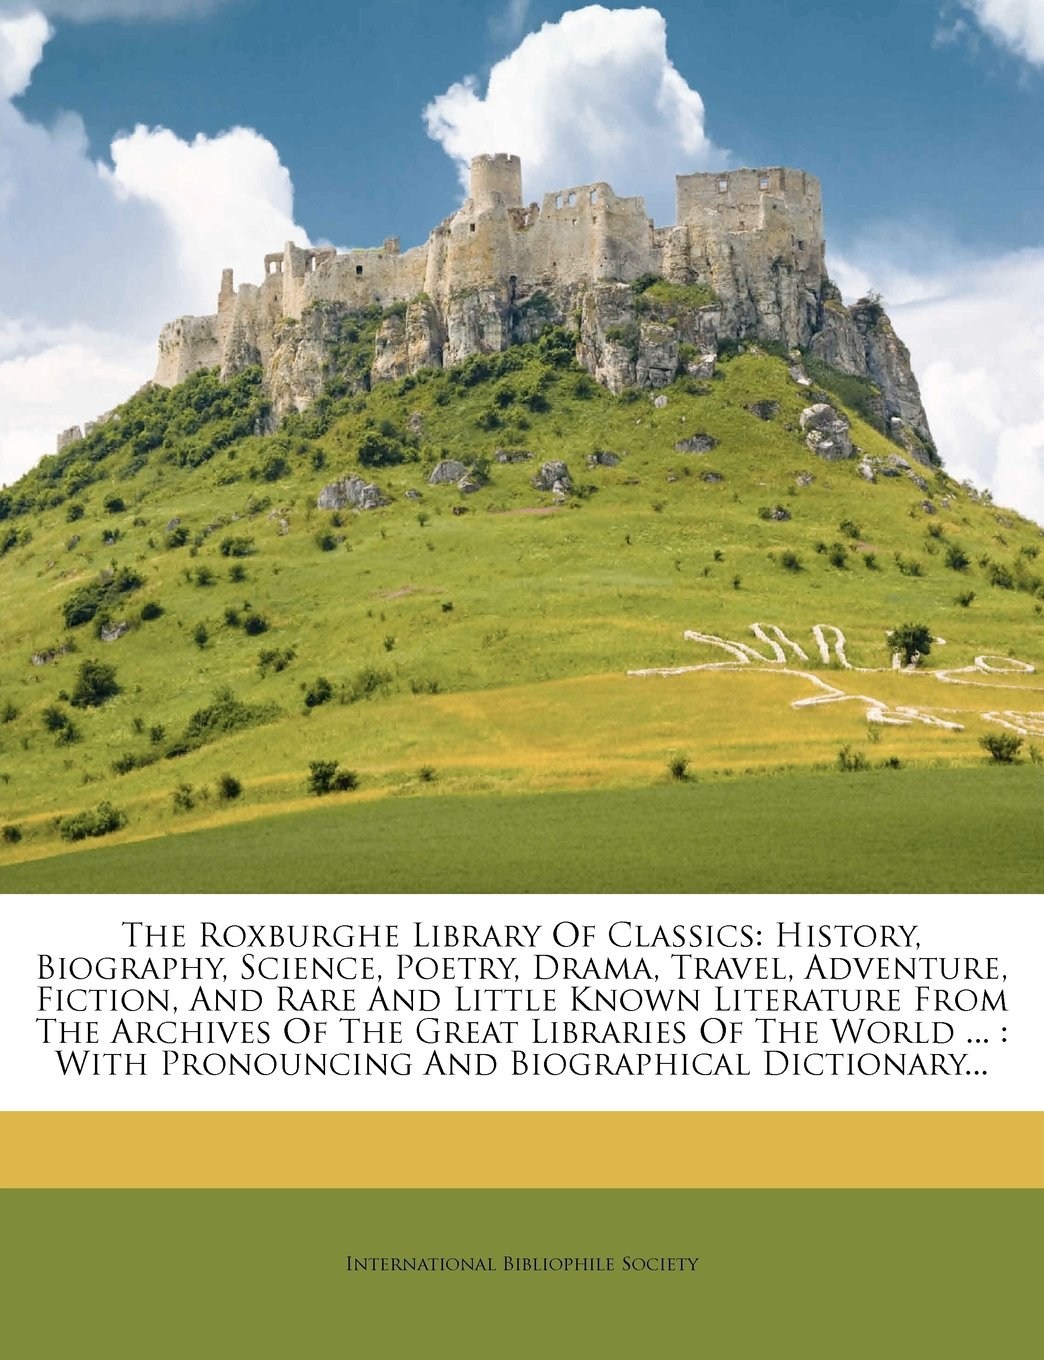 Download The Roxburghe Library Of Classics: History, Biography, Science, Poetry, Drama, Travel, Adventure, Fiction, And Rare And Little Known Literature From ... Pronouncing And Biographical Dictionary... pdf